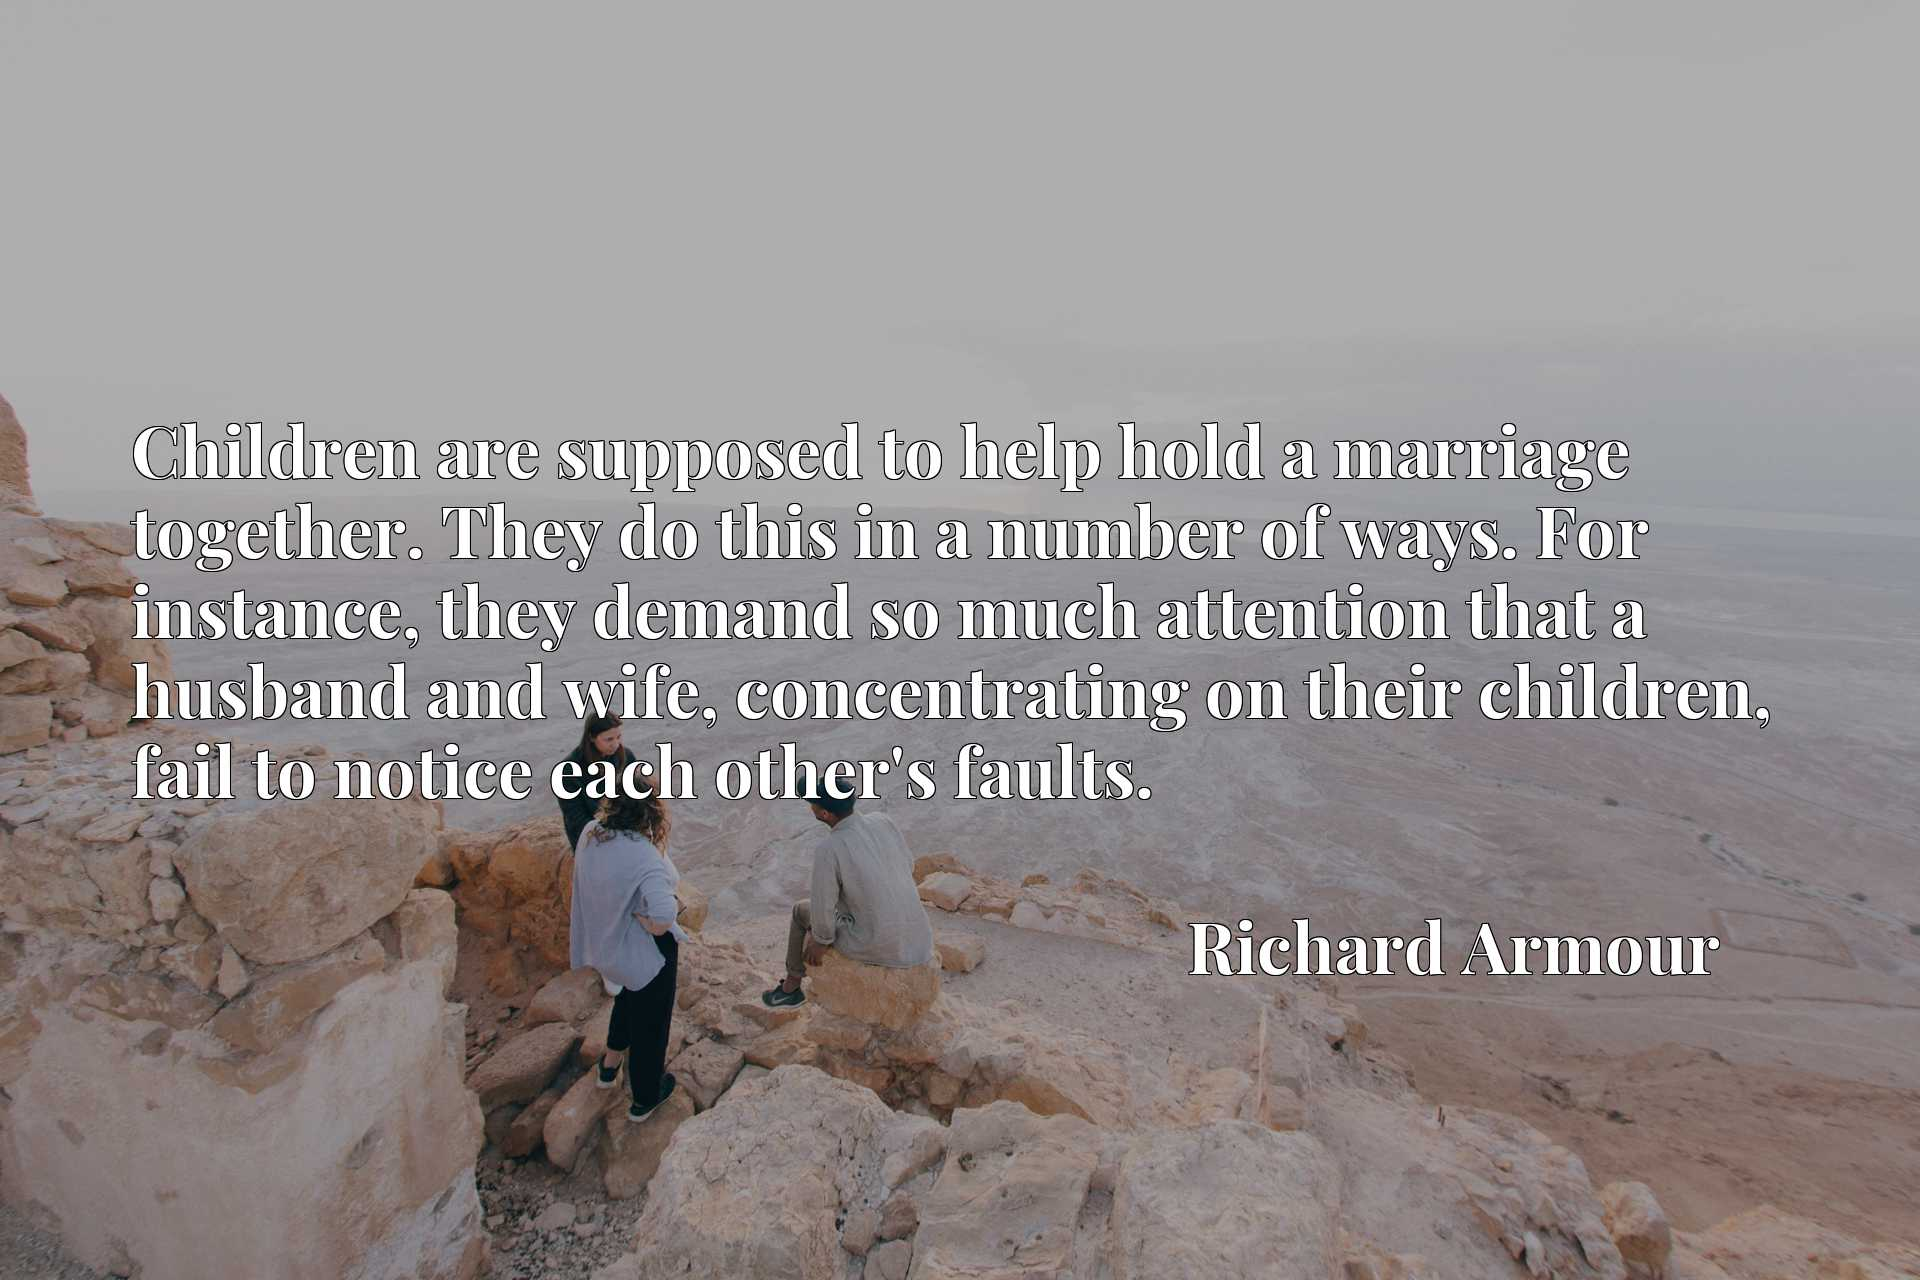 Children are supposed to help hold a marriage together. They do this in a number of ways. For instance, they demand so much attention that a husband and wife, concentrating on their children, fail to notice each other's faults.